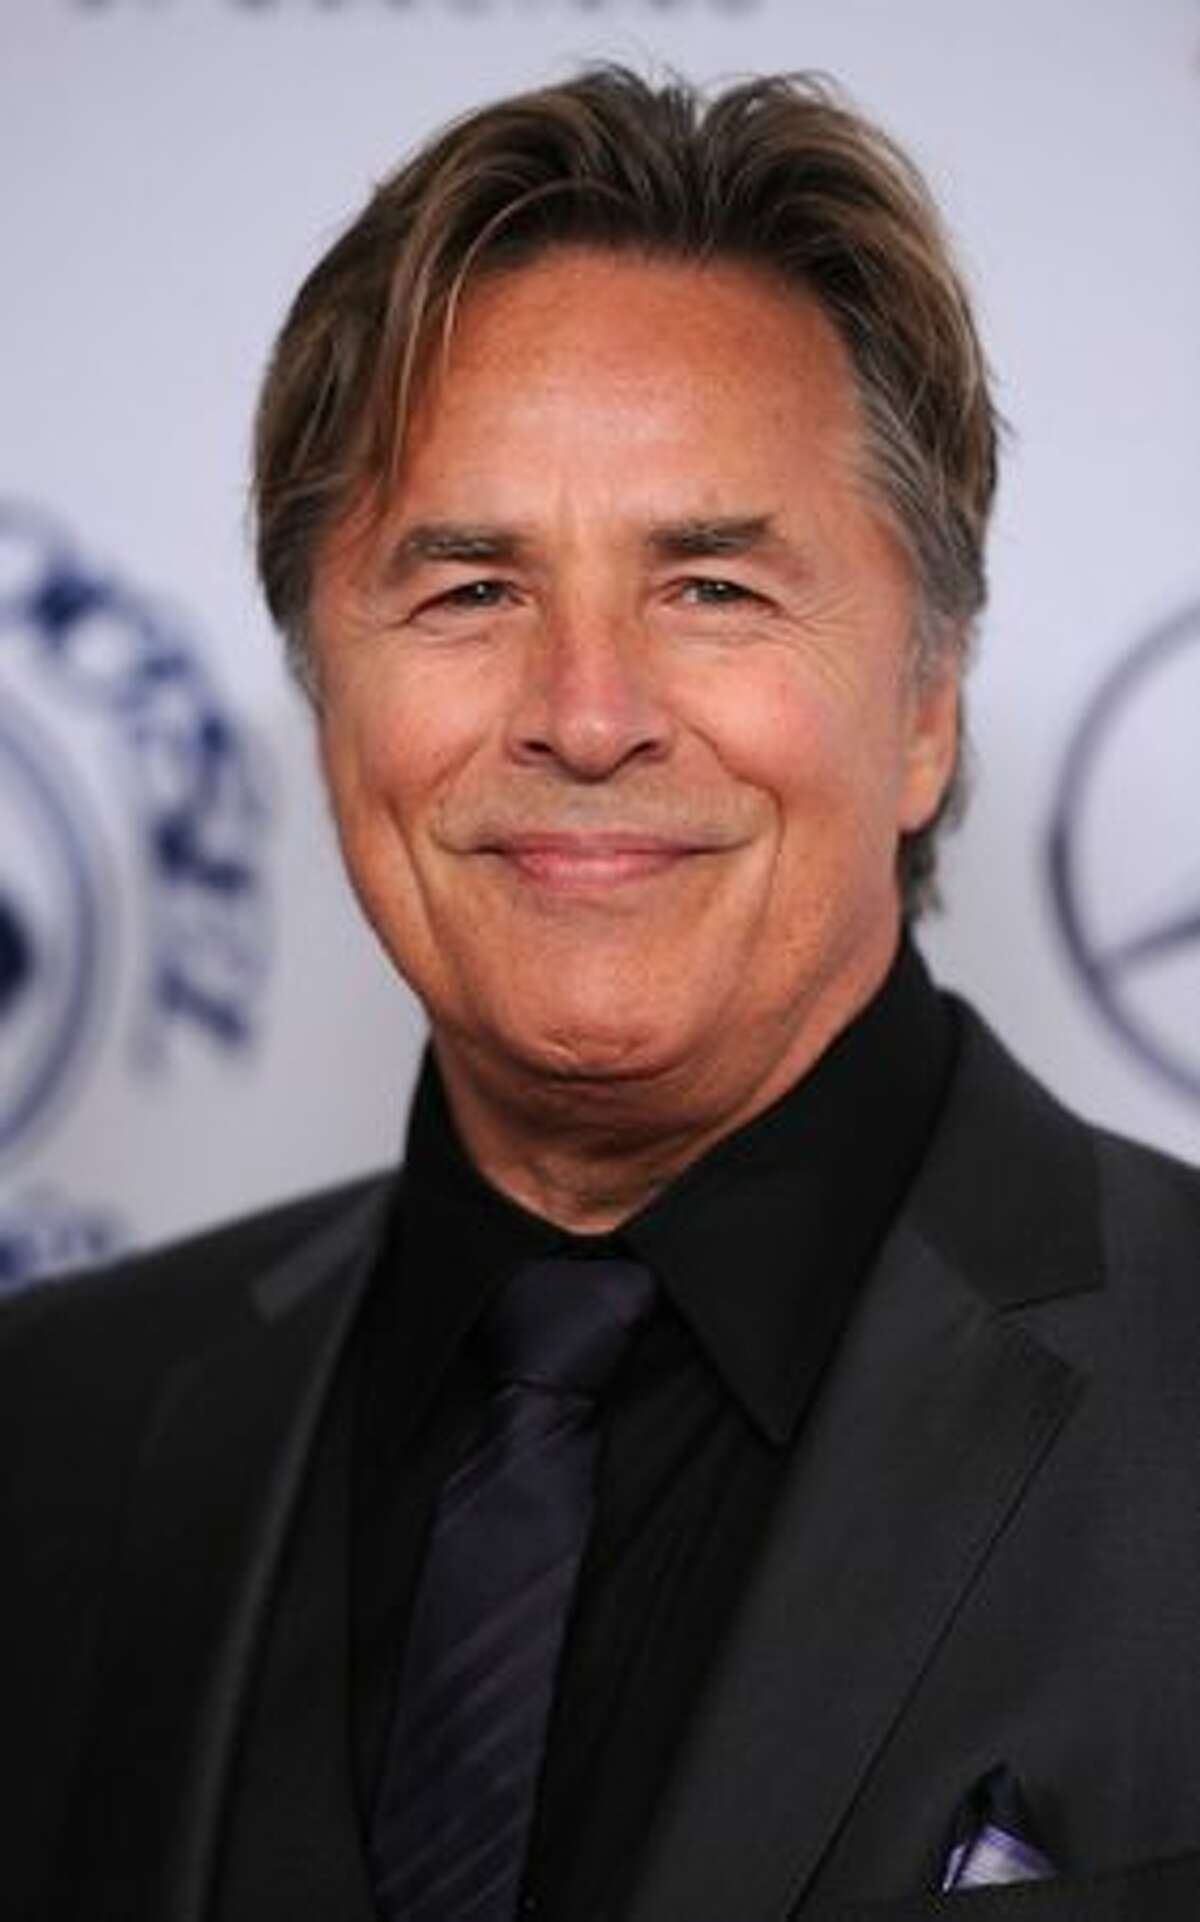 Actor Don Johnson arrives at the 32nd Anniversary Carousel Of Hope Gala at the Beverly Hilton Hotel in Beverly Hills, California.